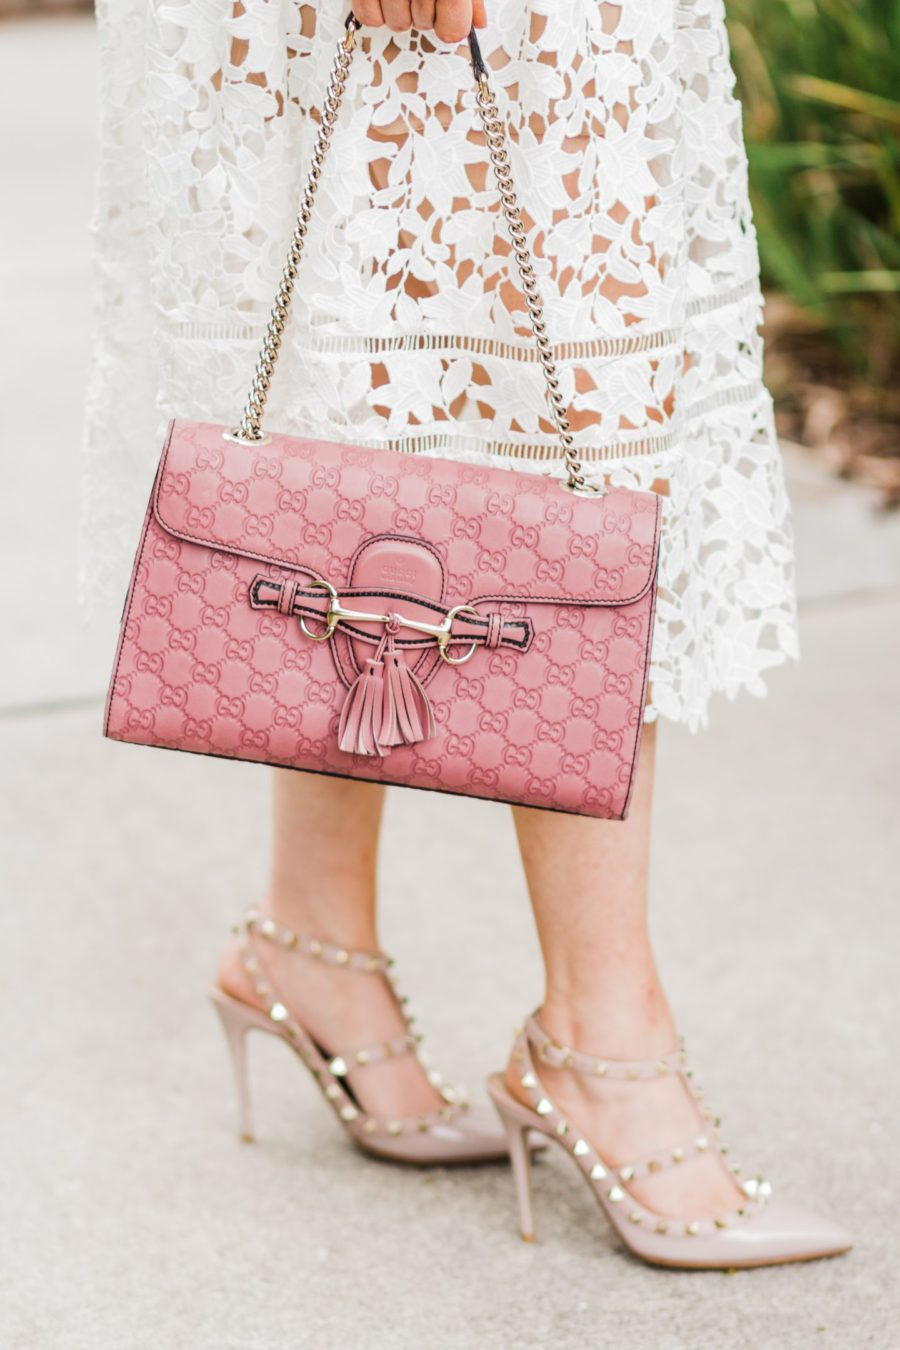 7f5b97e44f55 How to purchase designer handbags on a budget - Curated by Kirsten